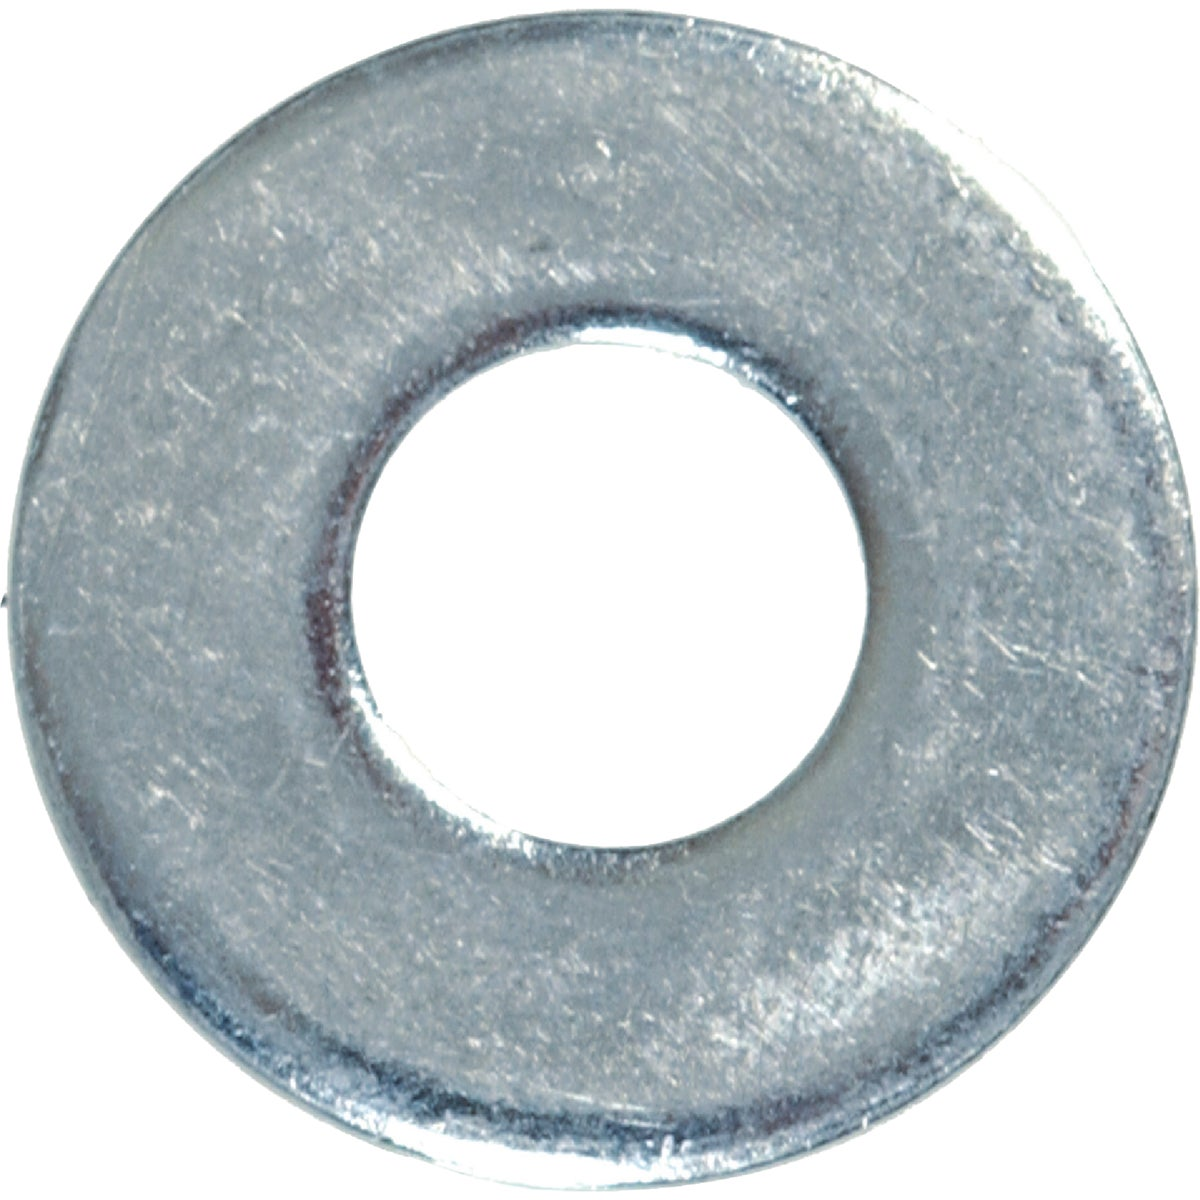 "5/16"" STEEL FLAT WASHER - 6426 by Hillman Fastener"